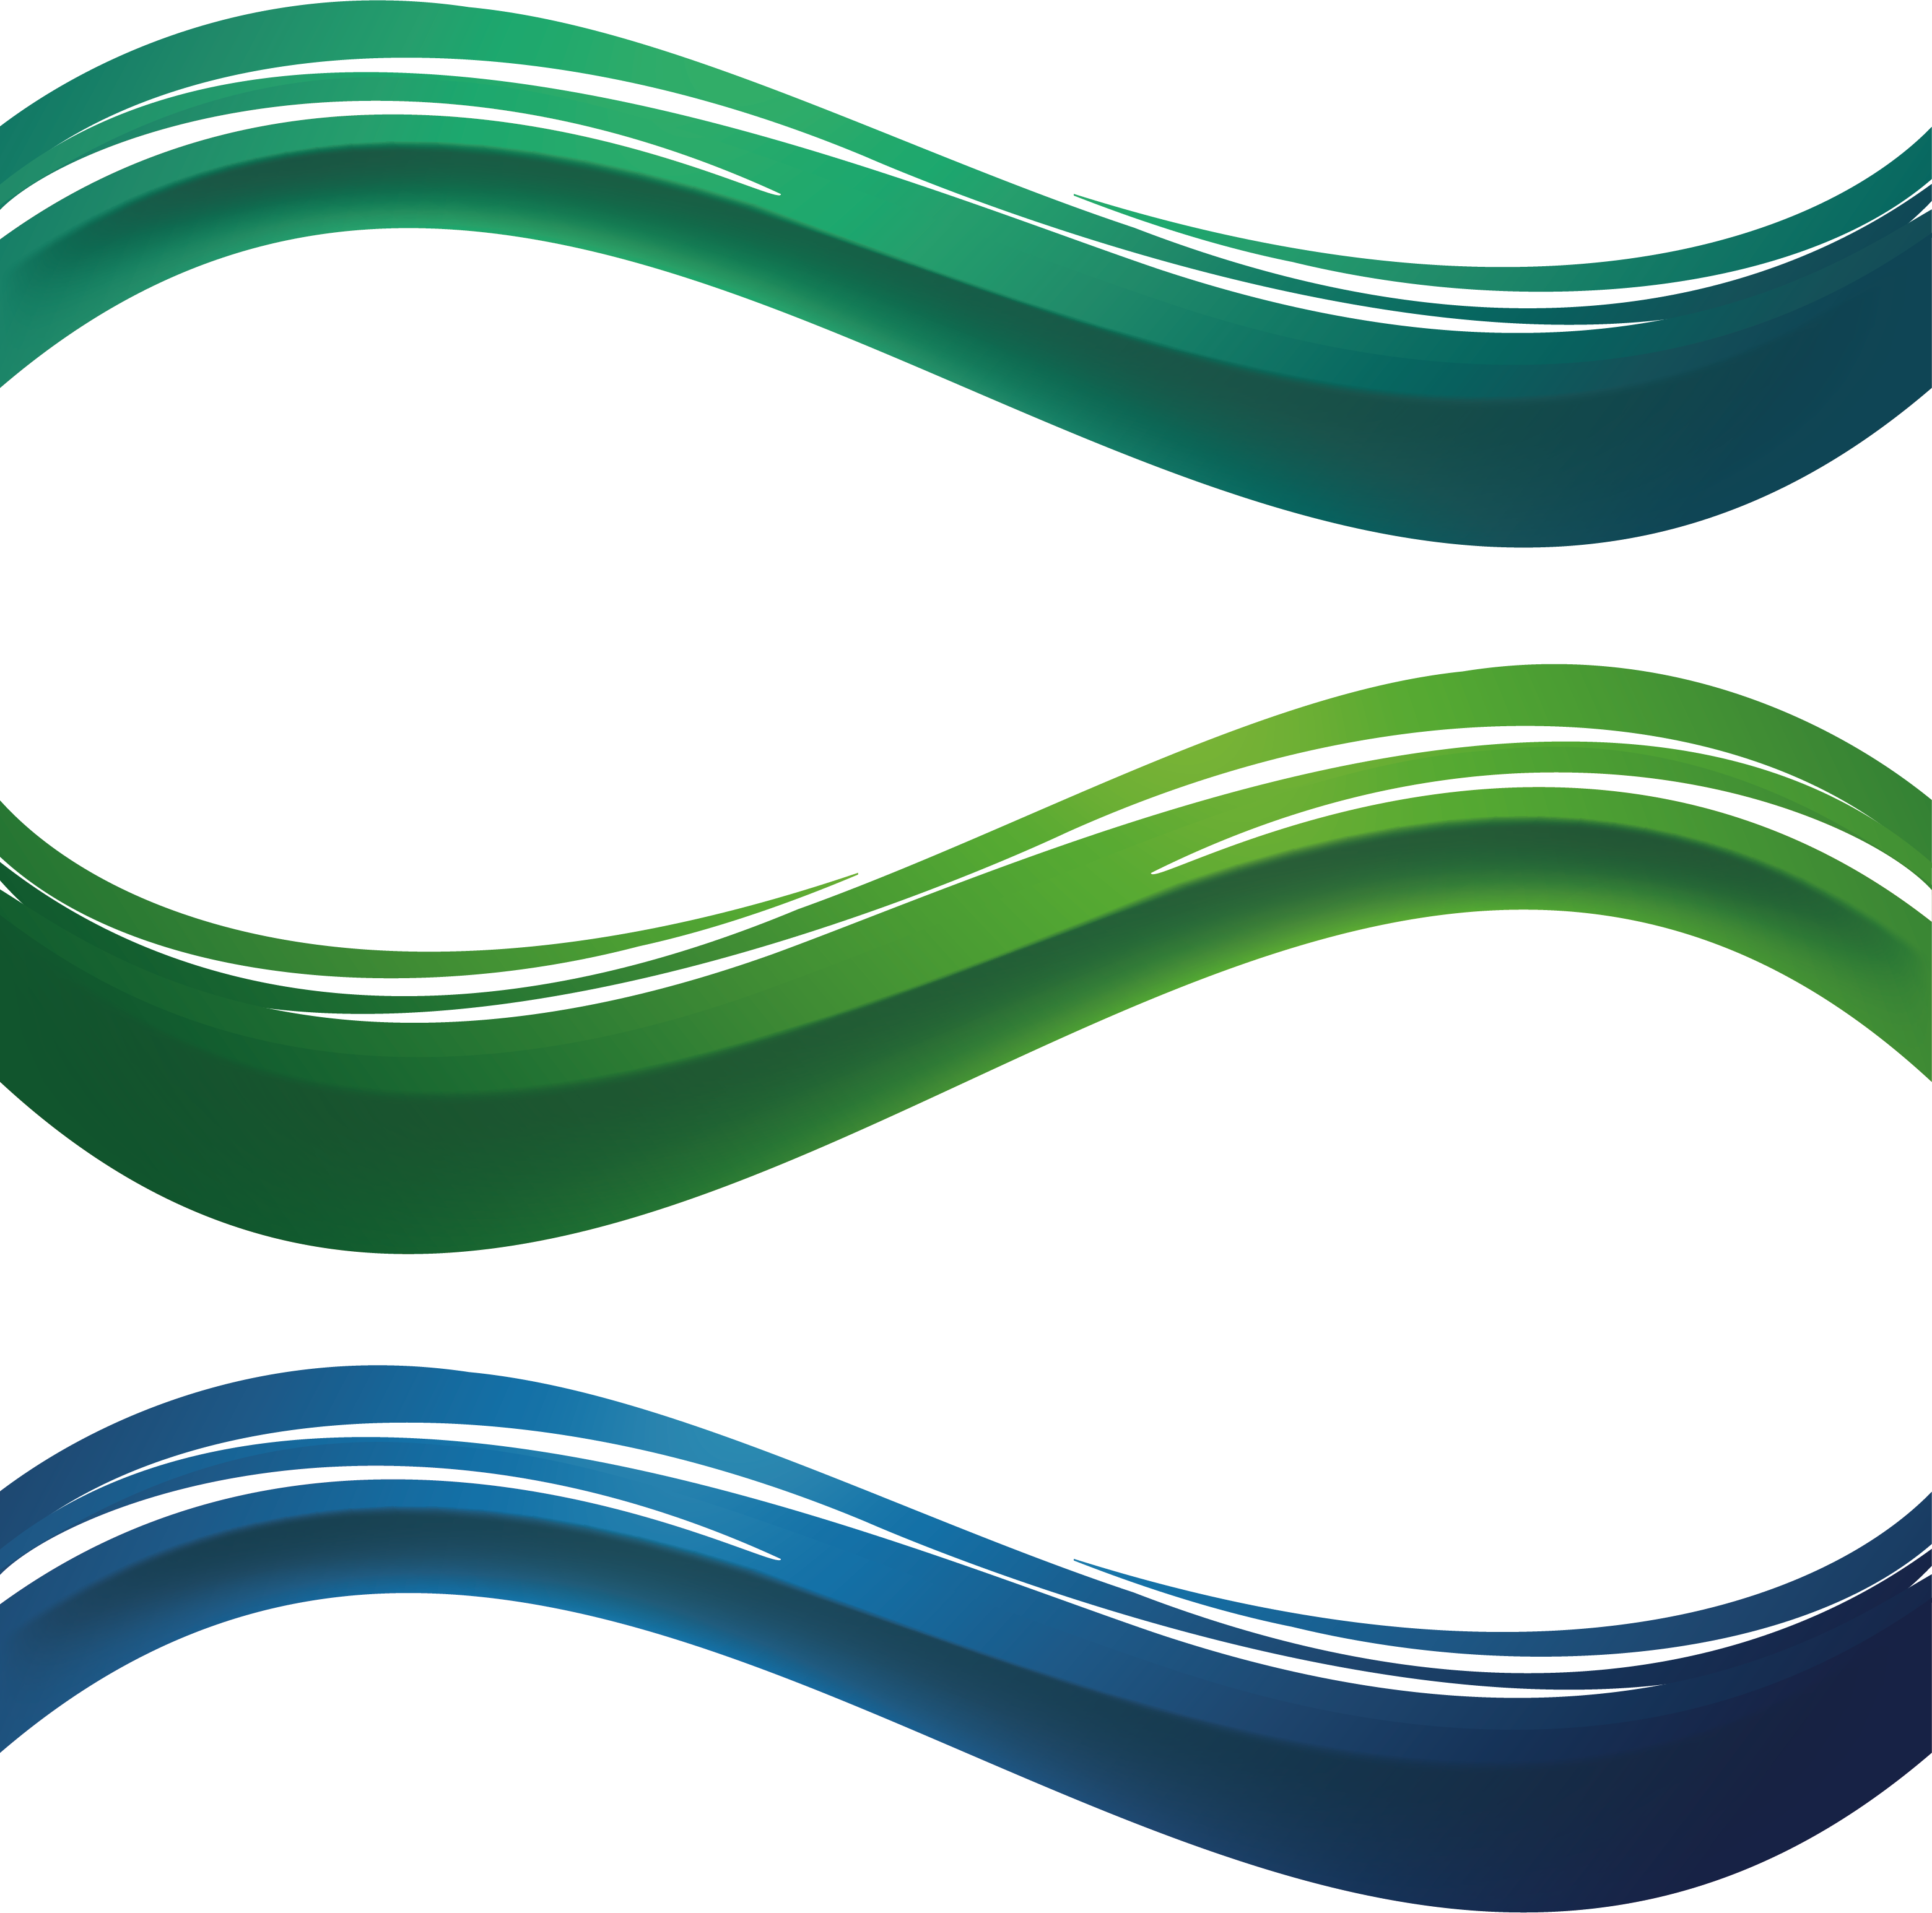 Clipart wave abstract. Green pattern transprent png